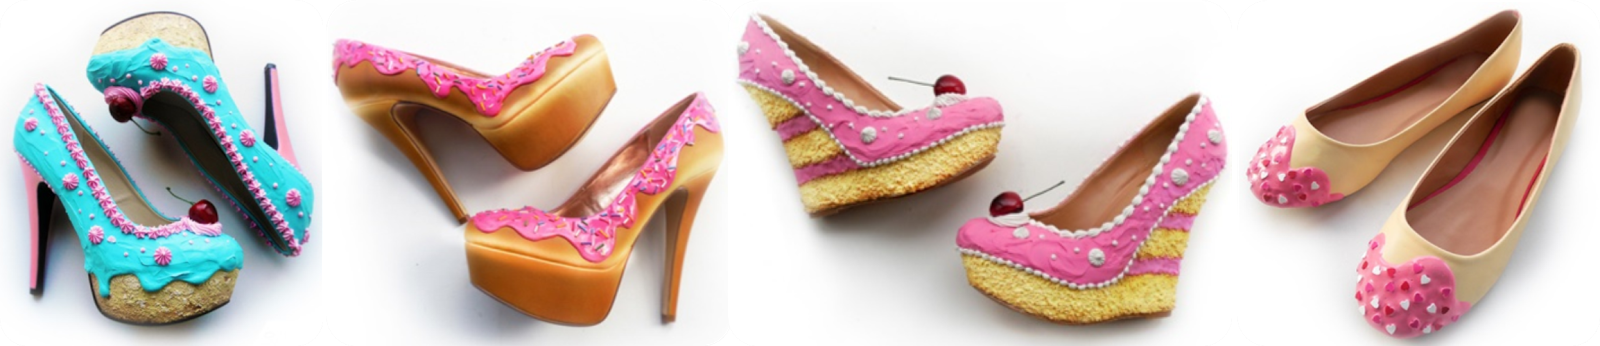 http://www.shoebakery.com/#!online-store/c21dw/!/Cake-Collection/c/9172165/offset=0&sort=normal